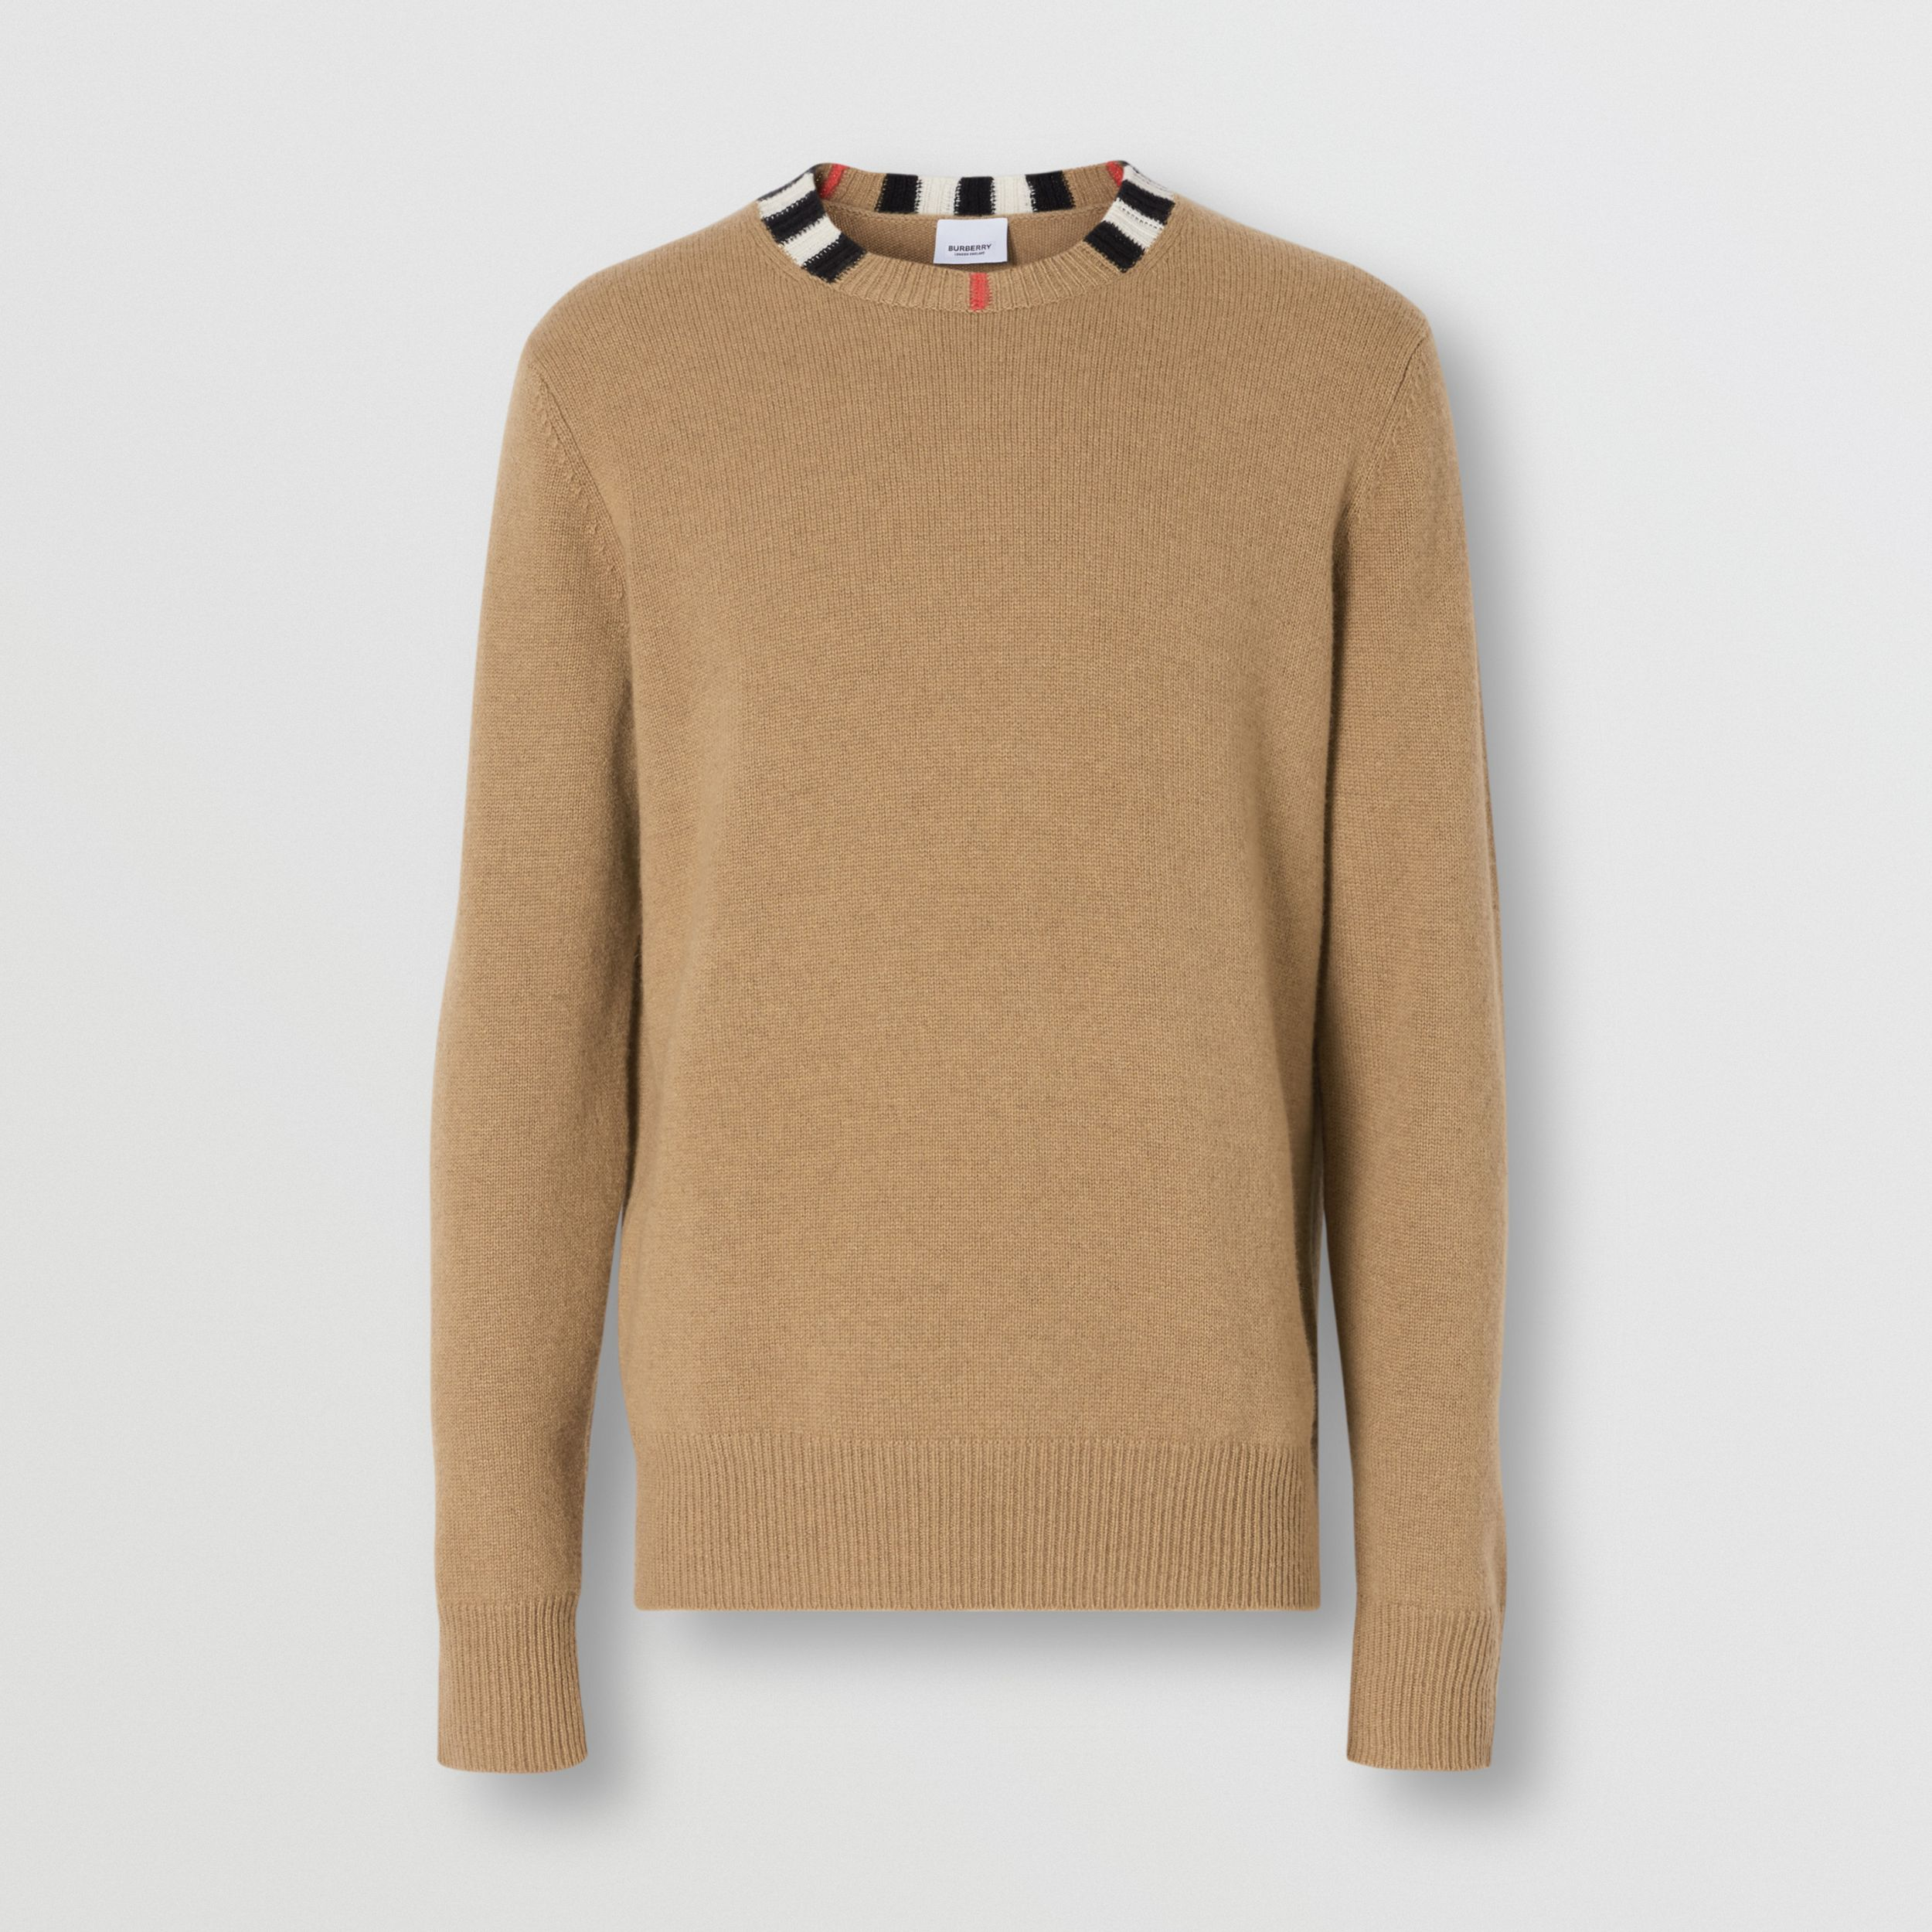 Icon Stripe Trim Cashmere Sweater in Camel - Men | Burberry Hong Kong S.A.R. - 4